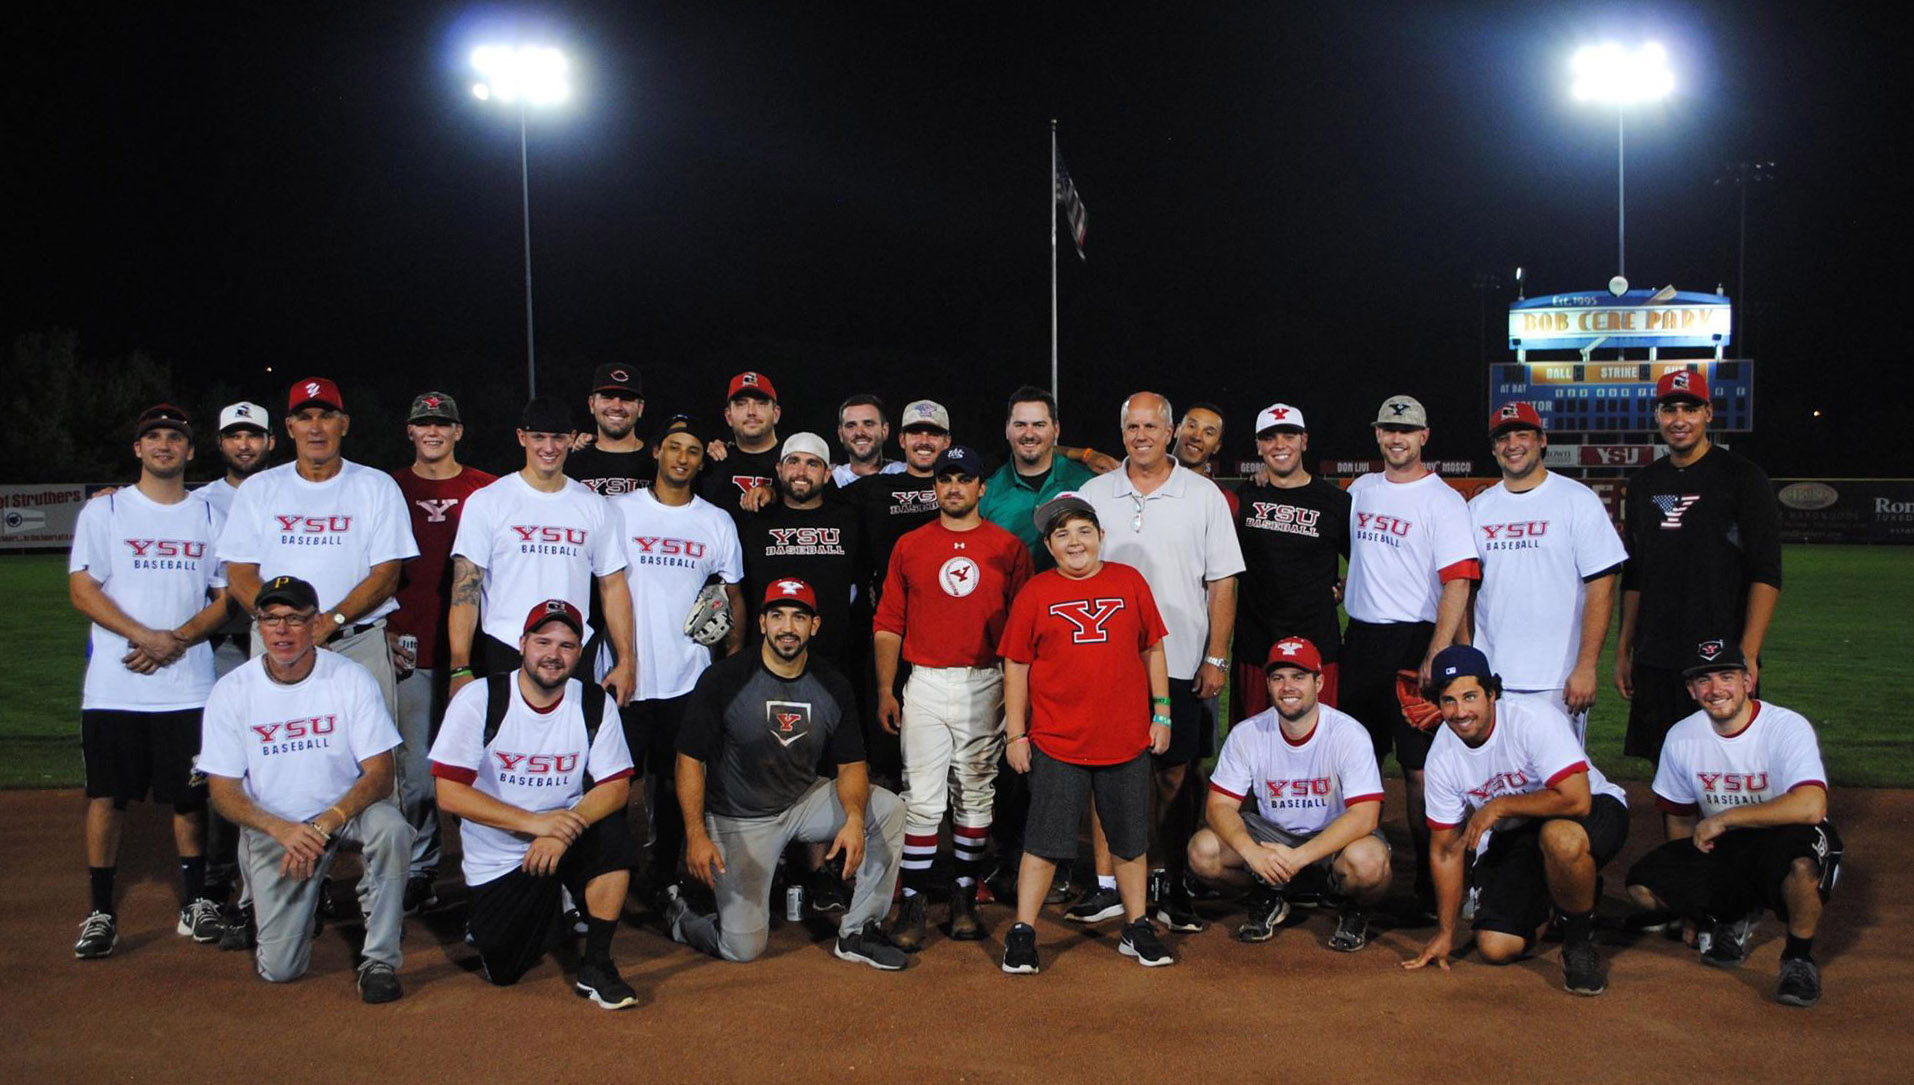 2016 YSU Baseball Alumni Game